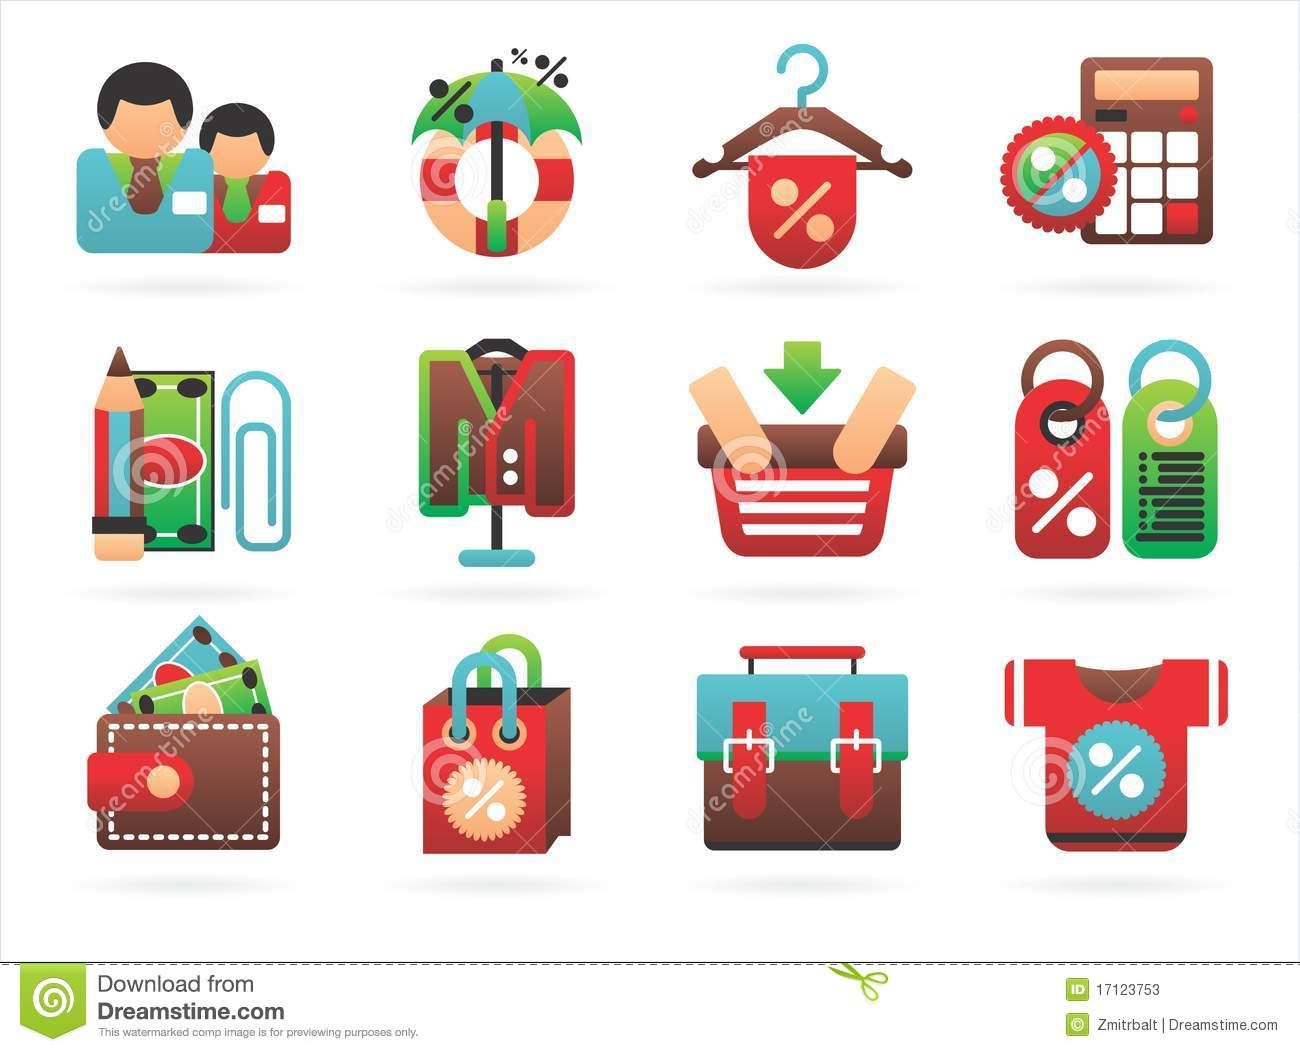 More similar stock images of ` Interesting shopping icons `: dreamstime.com/stock-photos-interesting-shopping-icons-image17123753